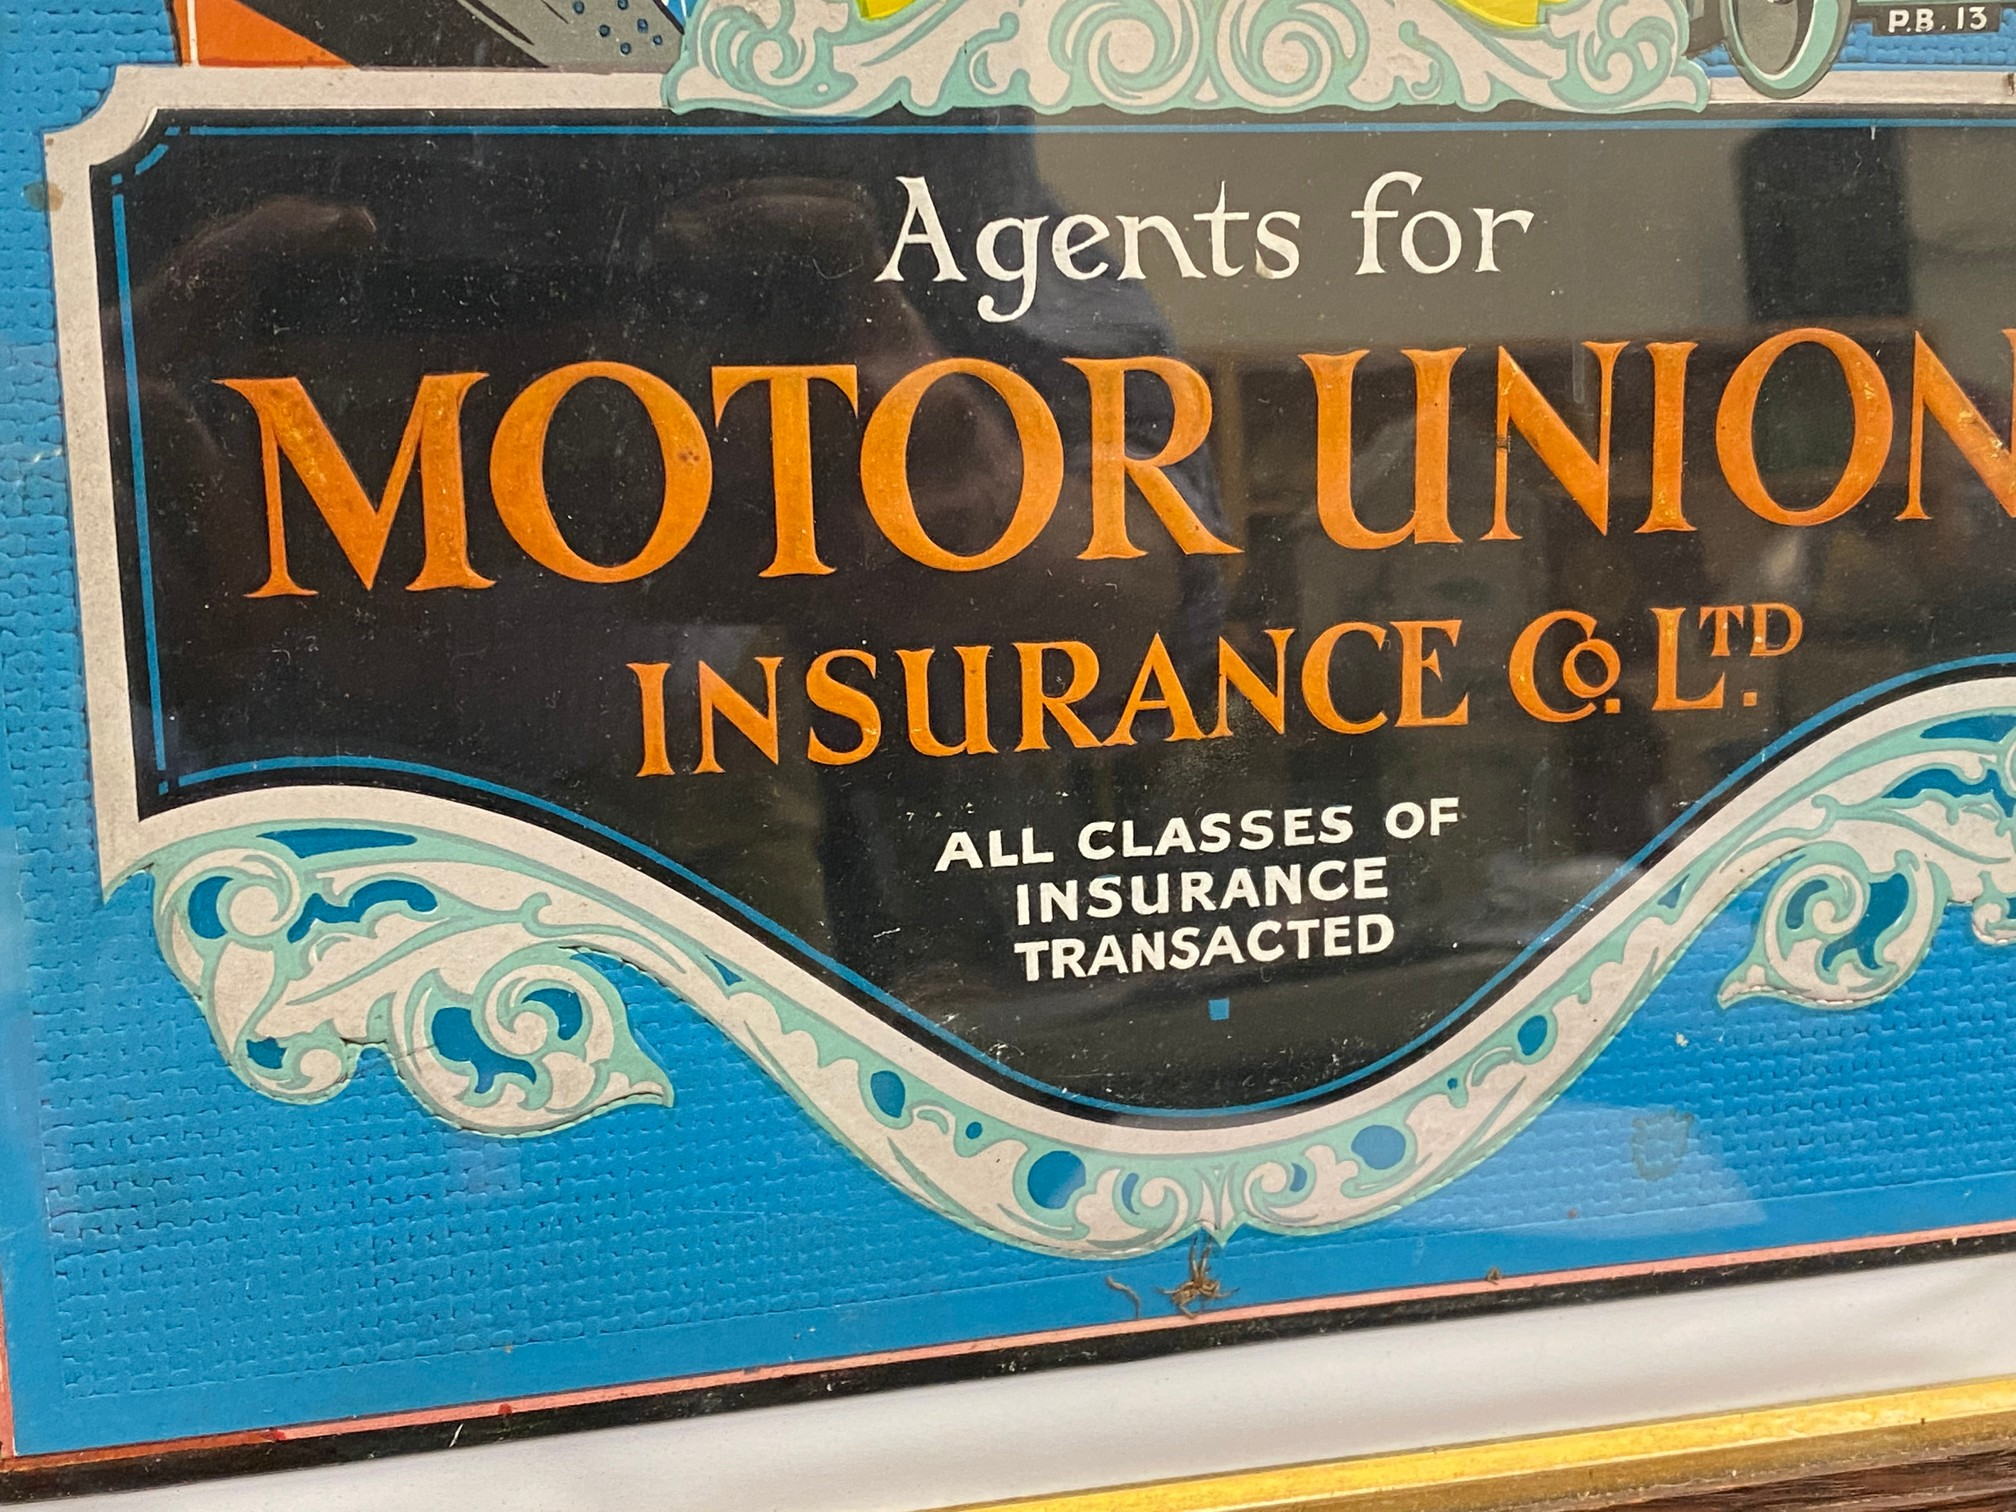 An early showcard advertising AA Member Policy - Agents for Motor Union Insurance Co Ltd, the card - Image 3 of 4